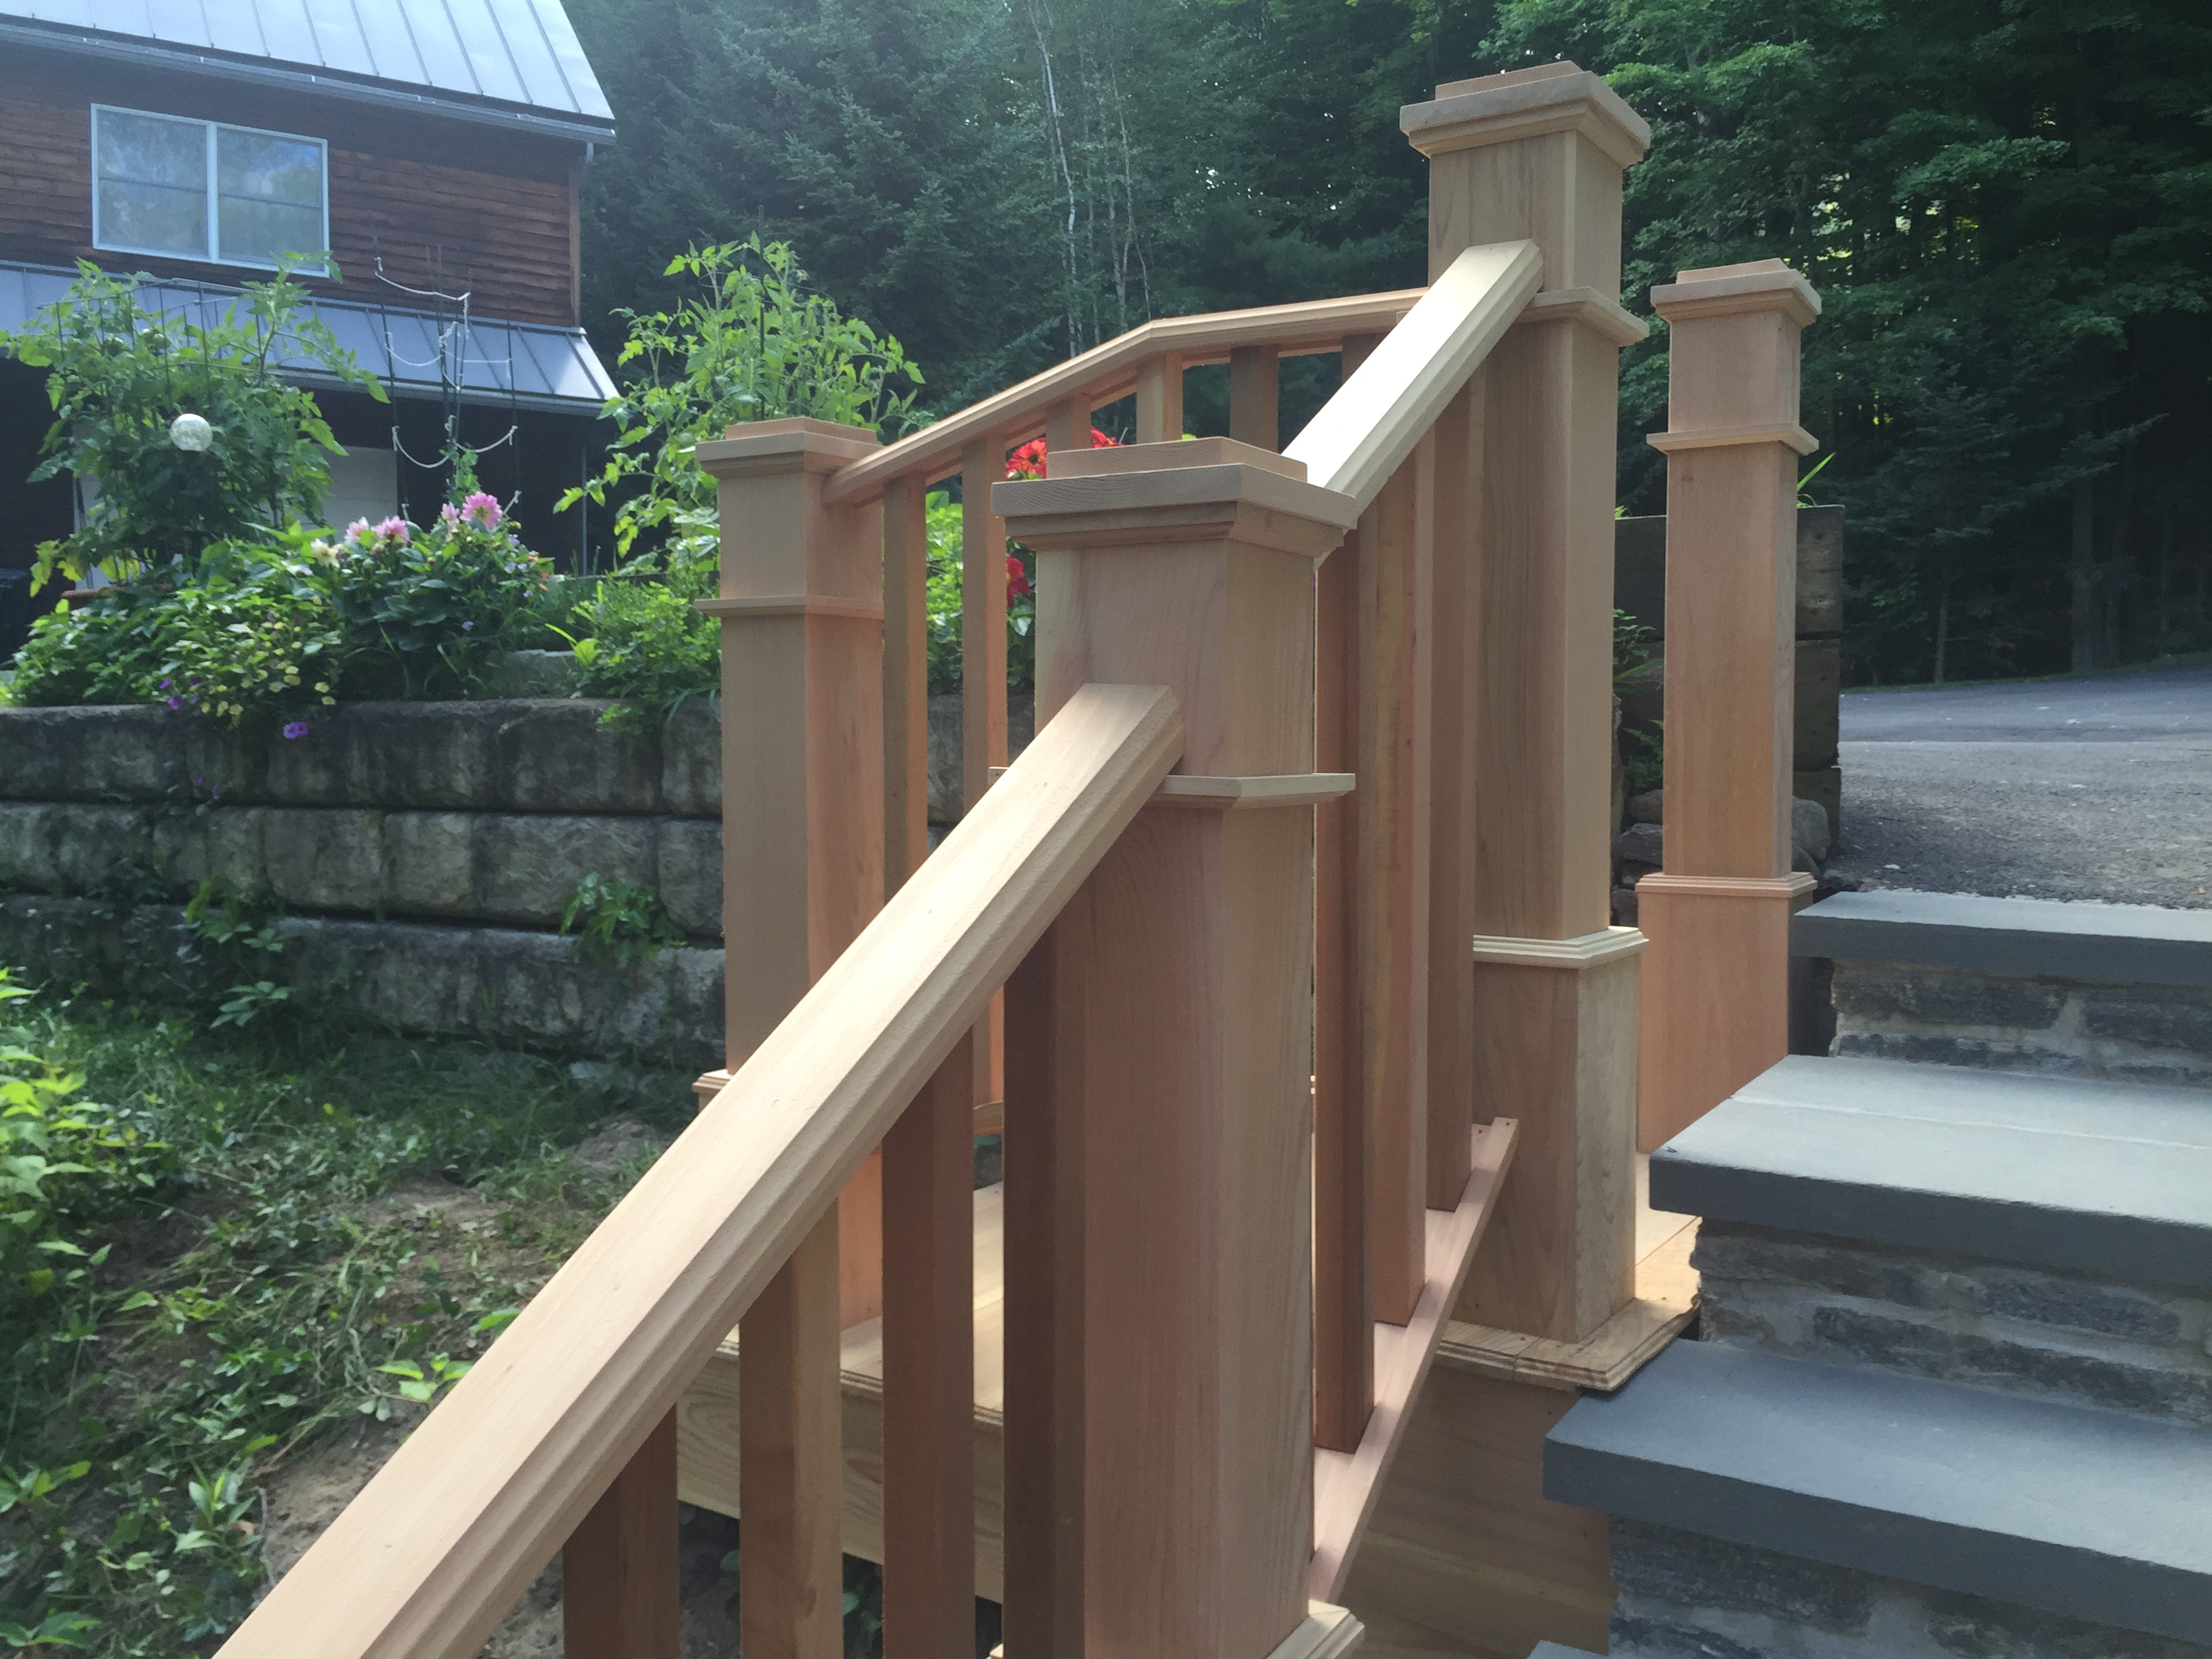 Outdoor Living | Patriot Construction of Upstate New York ... on Patriot Outdoor Living id=32195